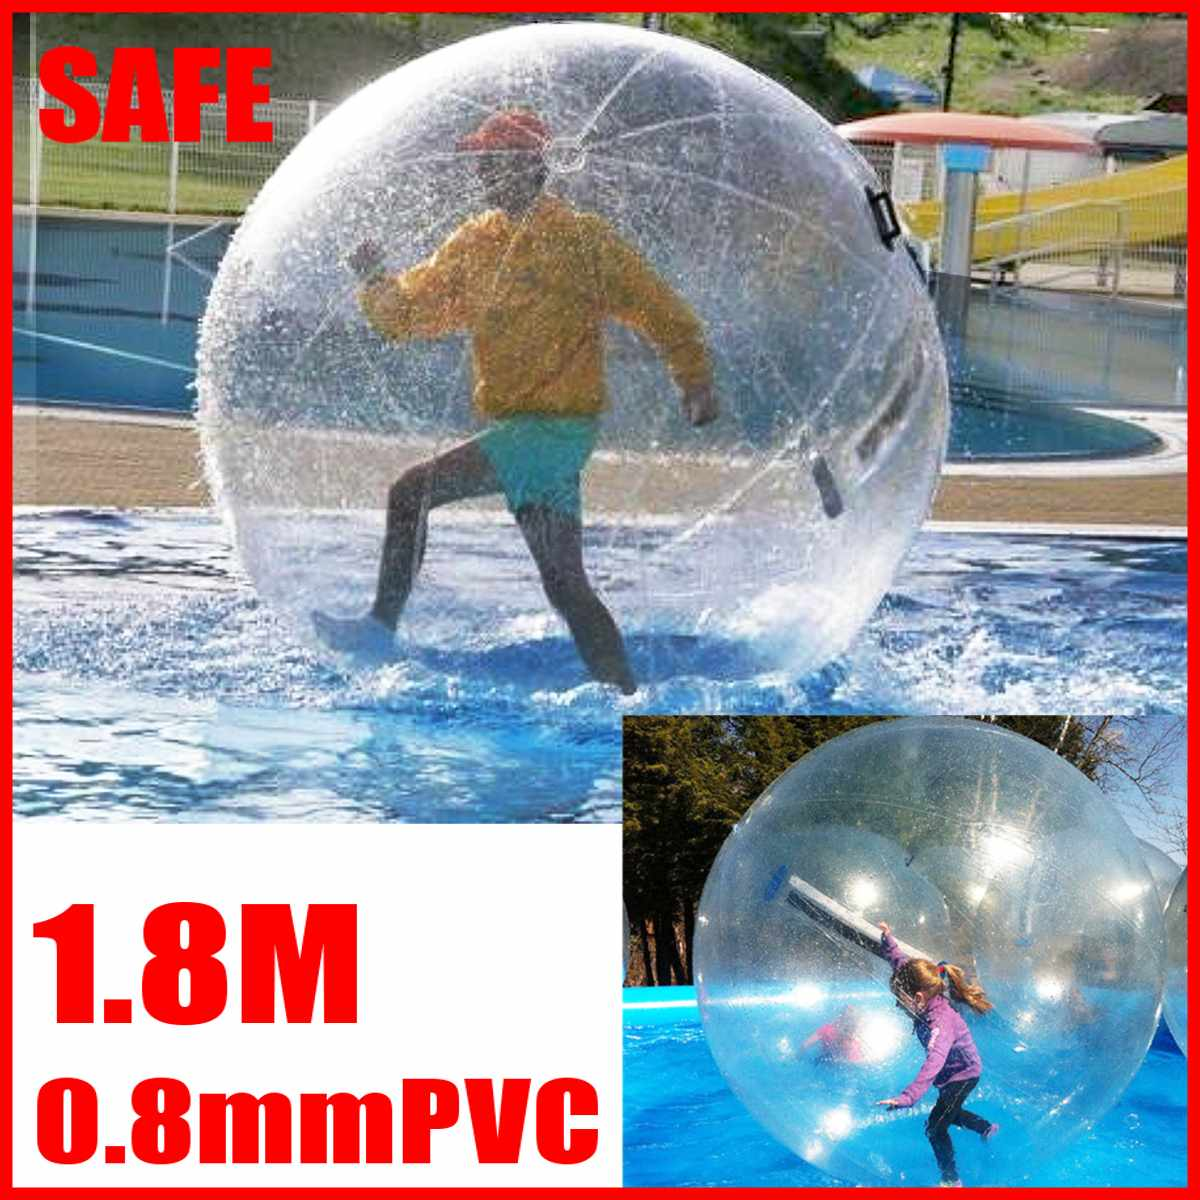 1.8m Outdoor Water Play Equipment PVC Inflatable Water Walking Ball Wear-resistant Water Toys Dance Ball with for Swimming Pool1.8m Outdoor Water Play Equipment PVC Inflatable Water Walking Ball Wear-resistant Water Toys Dance Ball with for Swimming Pool